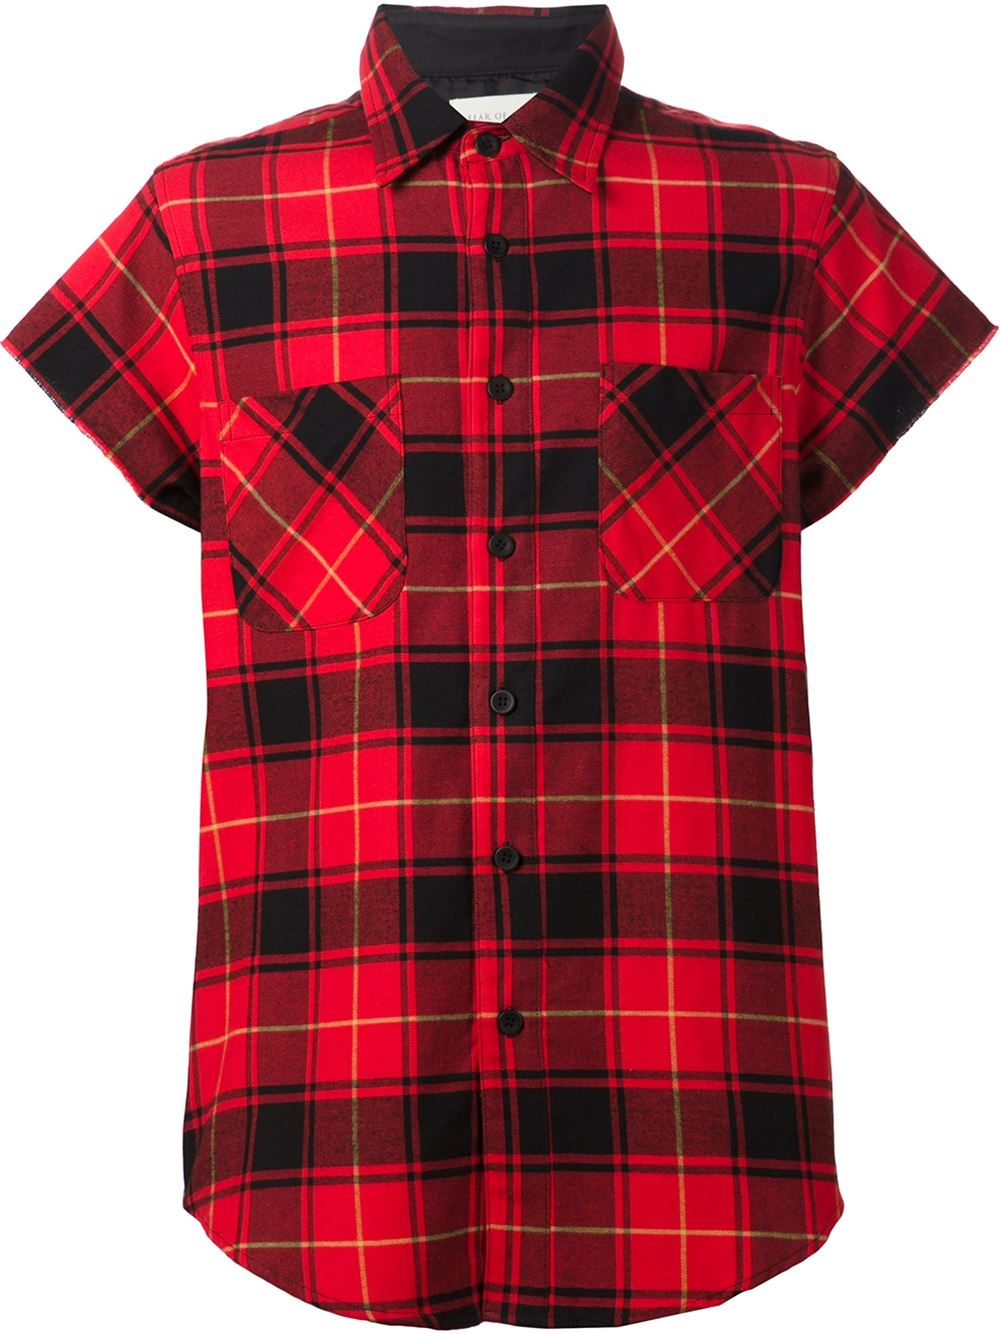 Fear of god short sleeve plaid shirt in red for men lyst Short sleeve plaid shirts